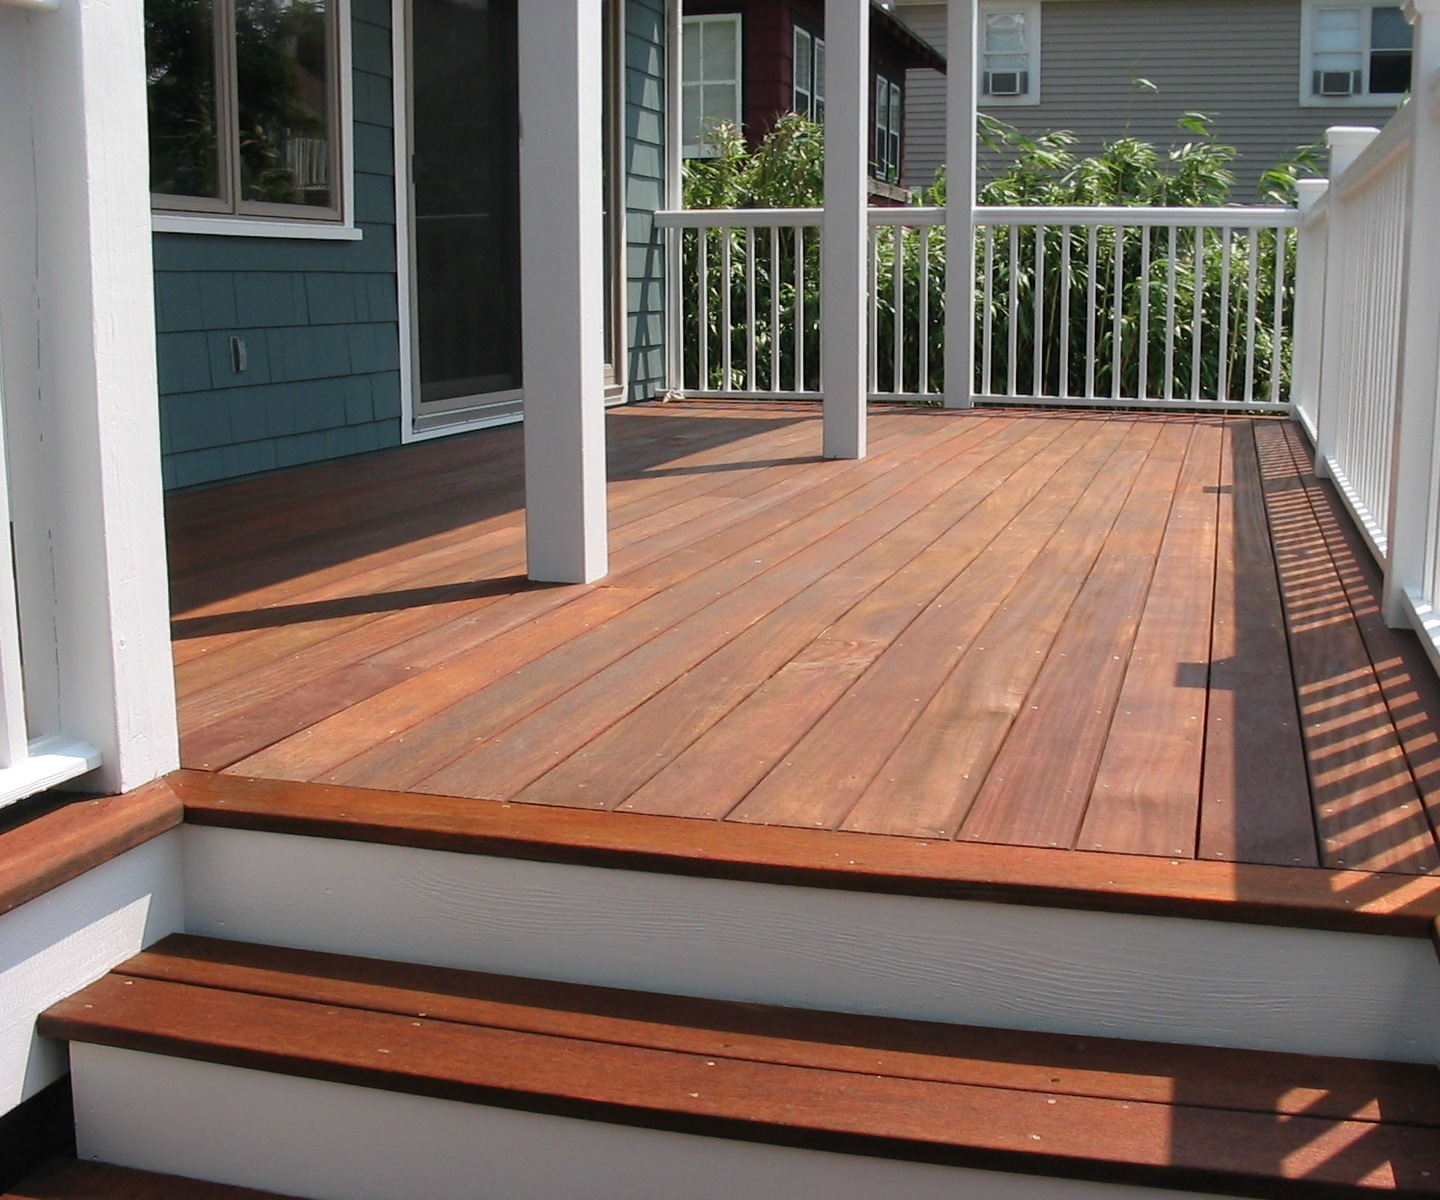 American Painting And Deckcare